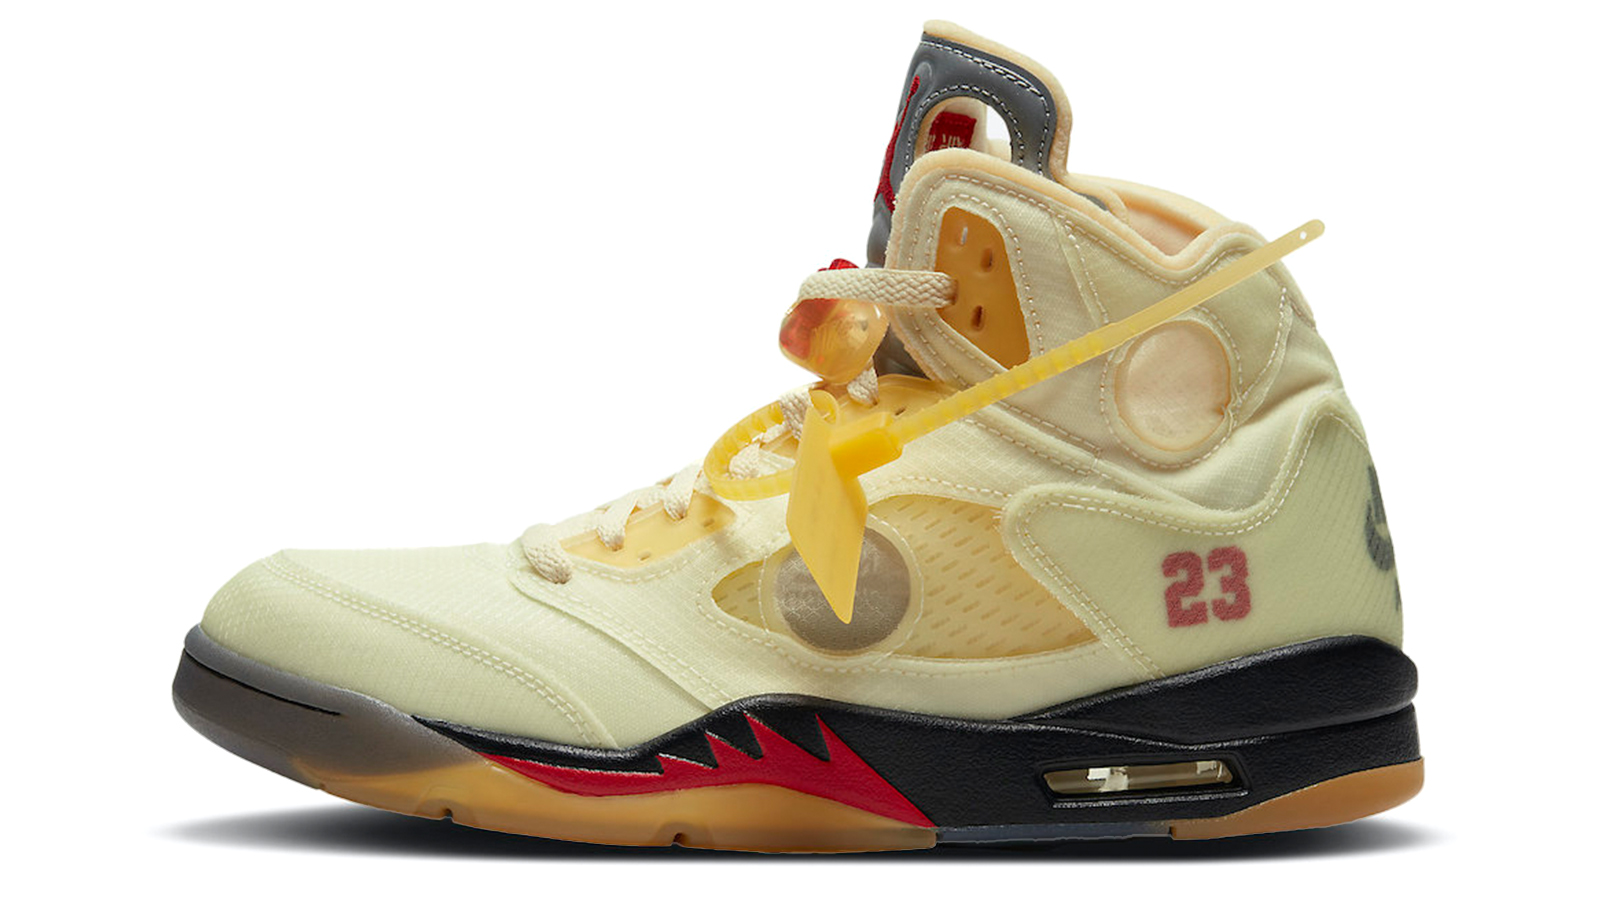 Off-White x Air Jordan 5 Sail Fire Red DH8565-100